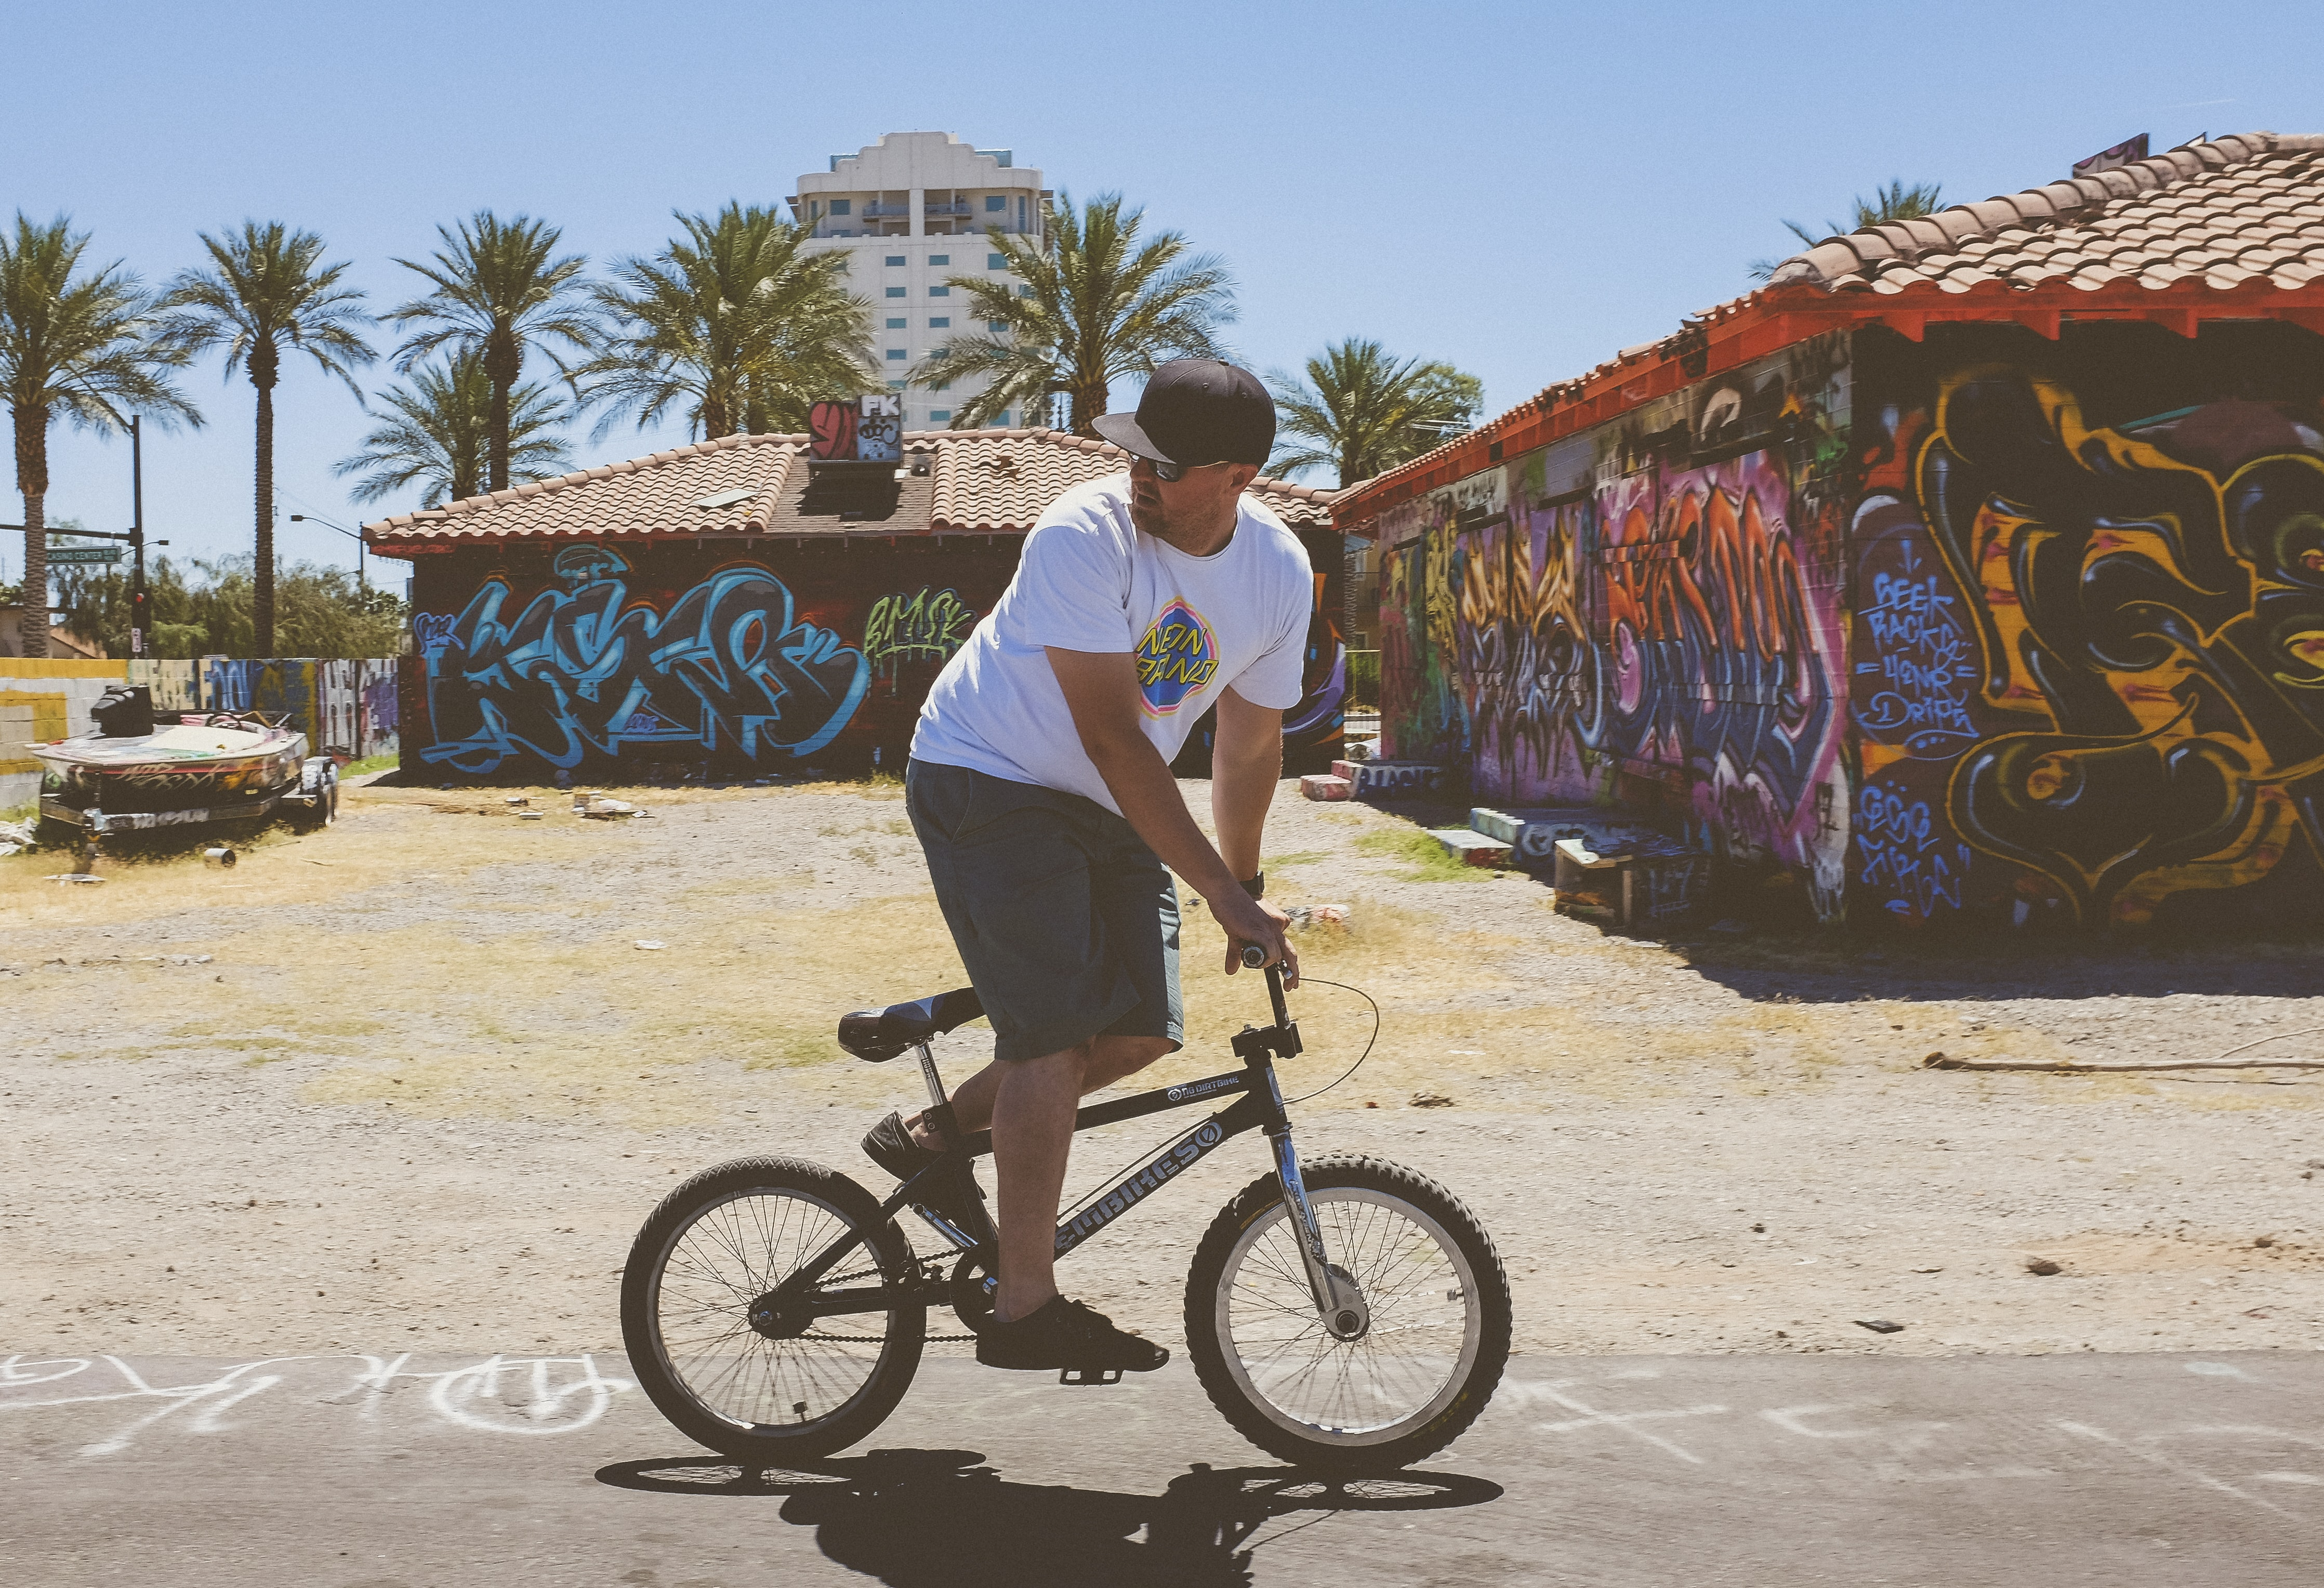 Man riding BMX on dusty road near graffiti covered buildings near palm trees in Arts District